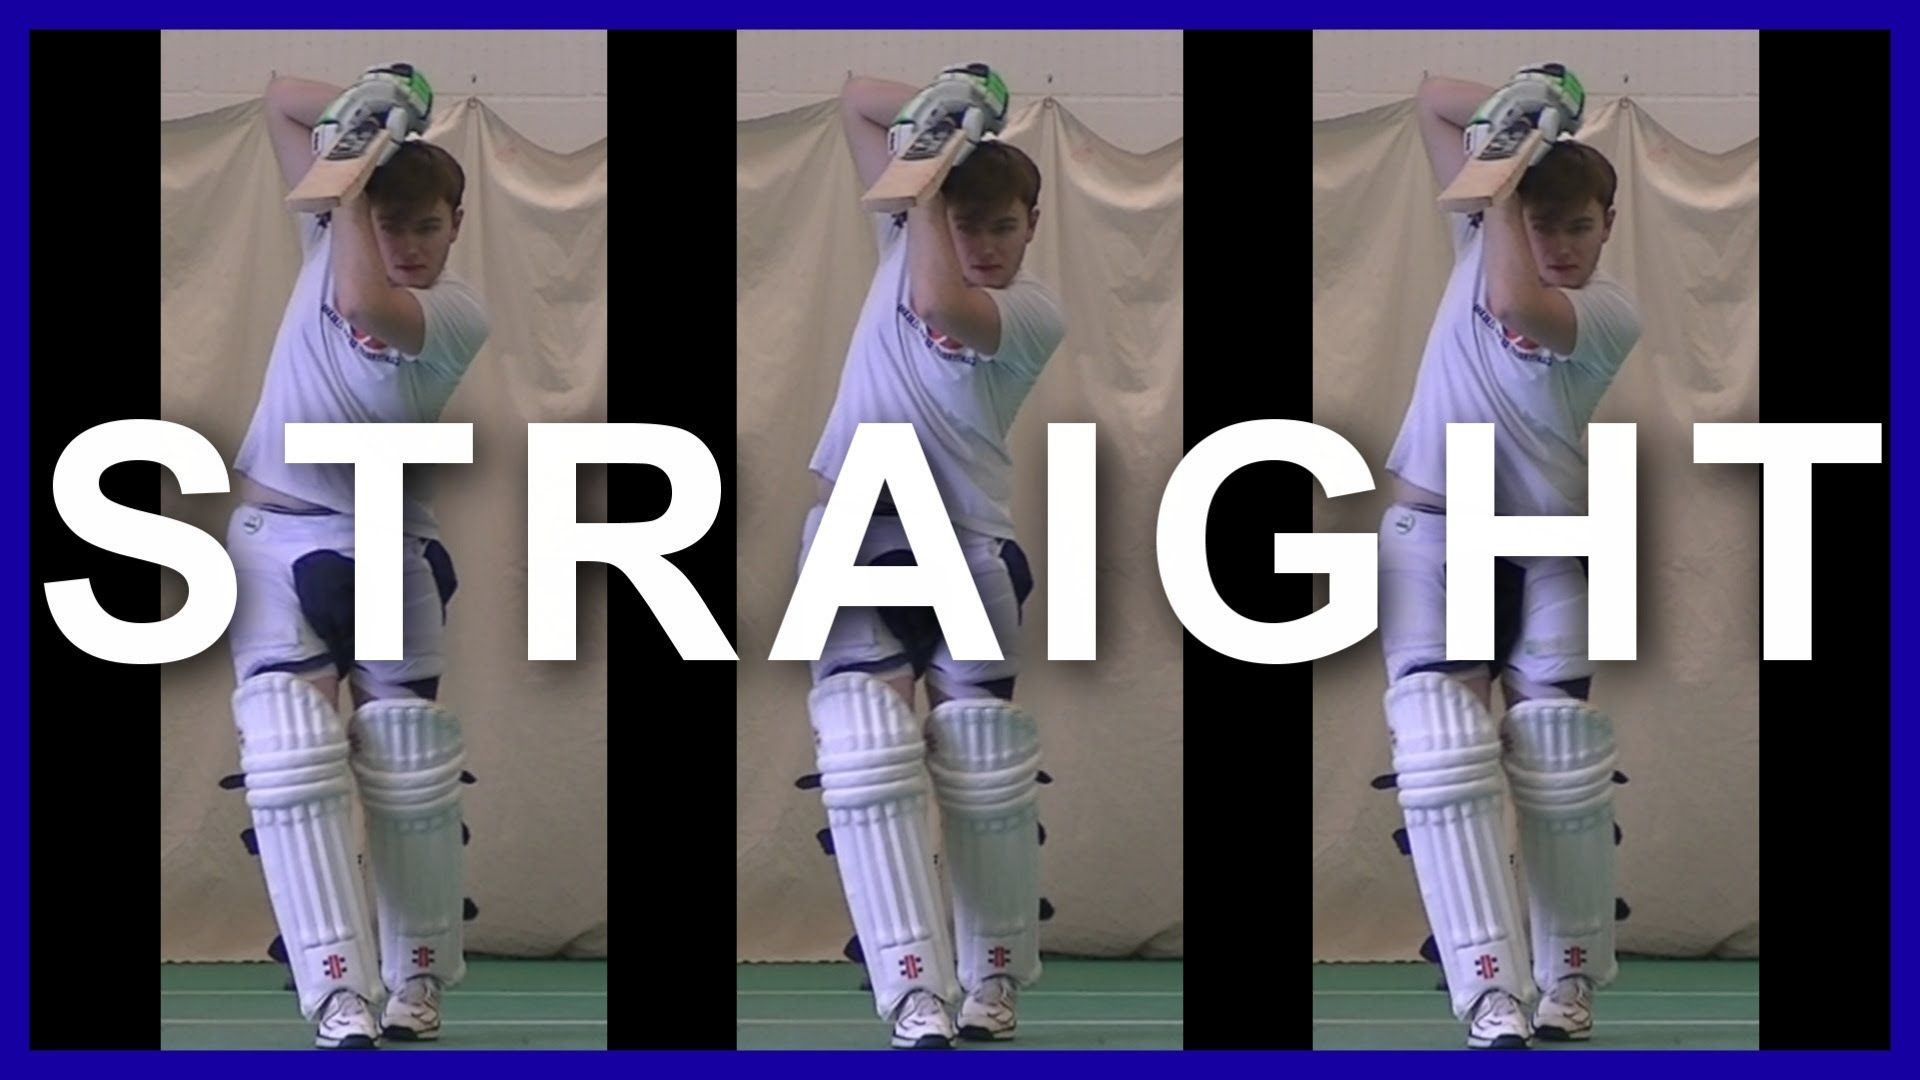 Cricket Training Batting Tips Drilling How To Play Straight Balls In Cricket Cricket Coaching Cricket Drill